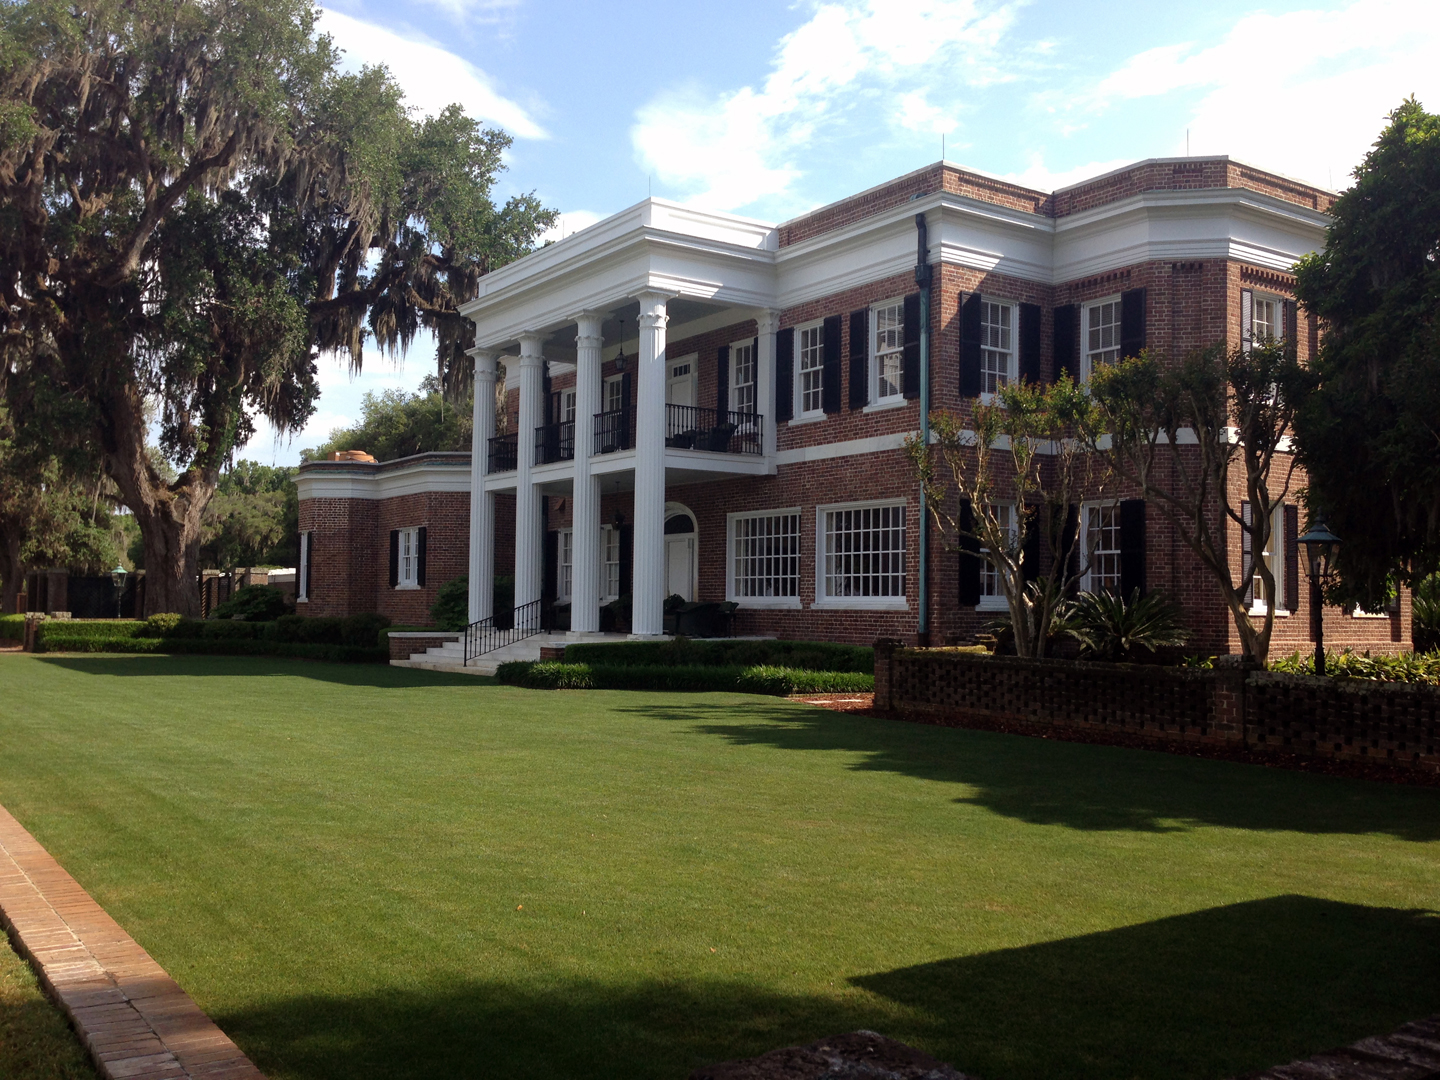 In the early 1920s, a stranger from Michigan unexpectedly appeared. Industrialist Henry Ford purchased massive amounts of land in the area. He eventually accumulated 70,000 acres, covering 120 square miles. In 1936, Ford broke ground for a beautiful Greek revival style mansion on the banks of the Ogeechee River. The grand house, made of Savannah-gray brick, had marble steps, air conditioning and an elevator. It sat on 55 acres of manicured lawns and flowering gardens. The house became the center of social gatherings with visitations by Vanderbilts, Rockefellers and DuPonts. It remains the centerpiece of The Ford Plantation today.